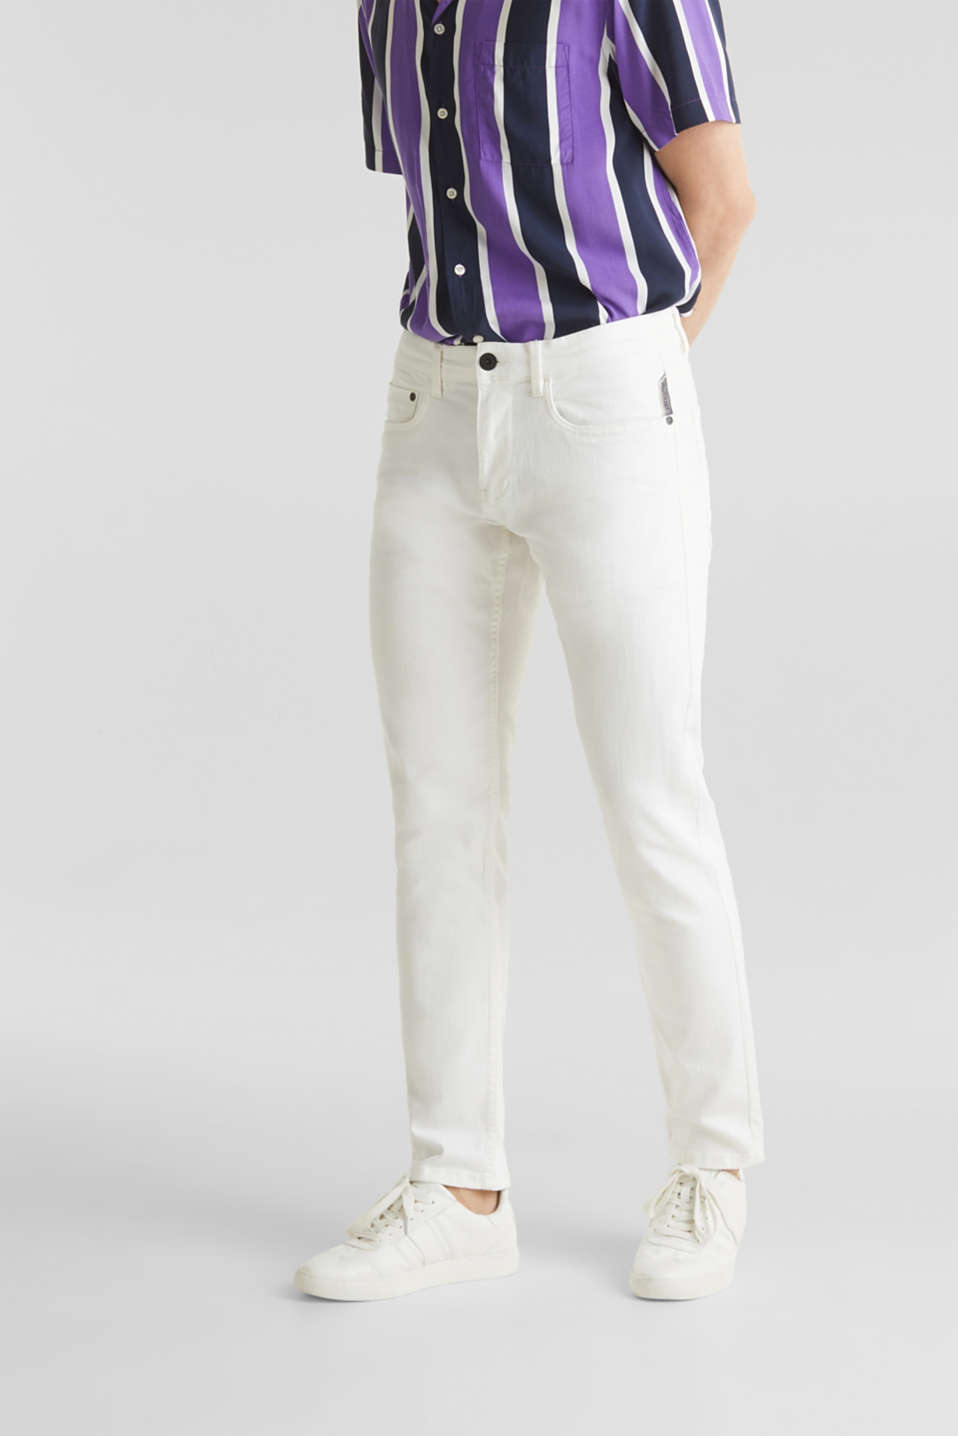 edc - Stretch trousers with wrinkled effects